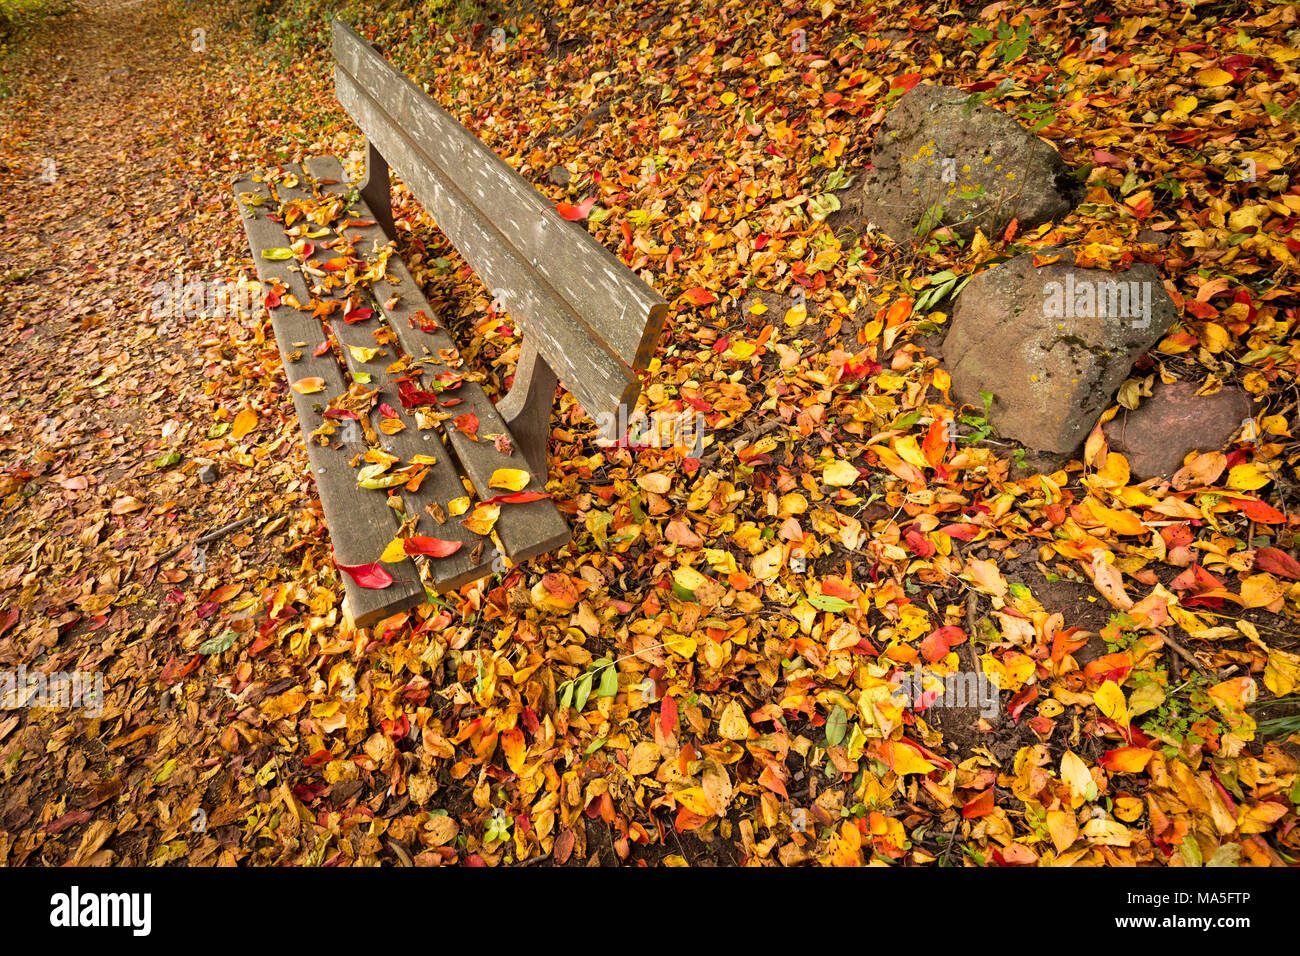 an emotional snapshot of the autumn with a bench and a carpet of coloured leaves, Bolzano province, South Tyrol, Trentino Alto Adige, Italy - Stock Image